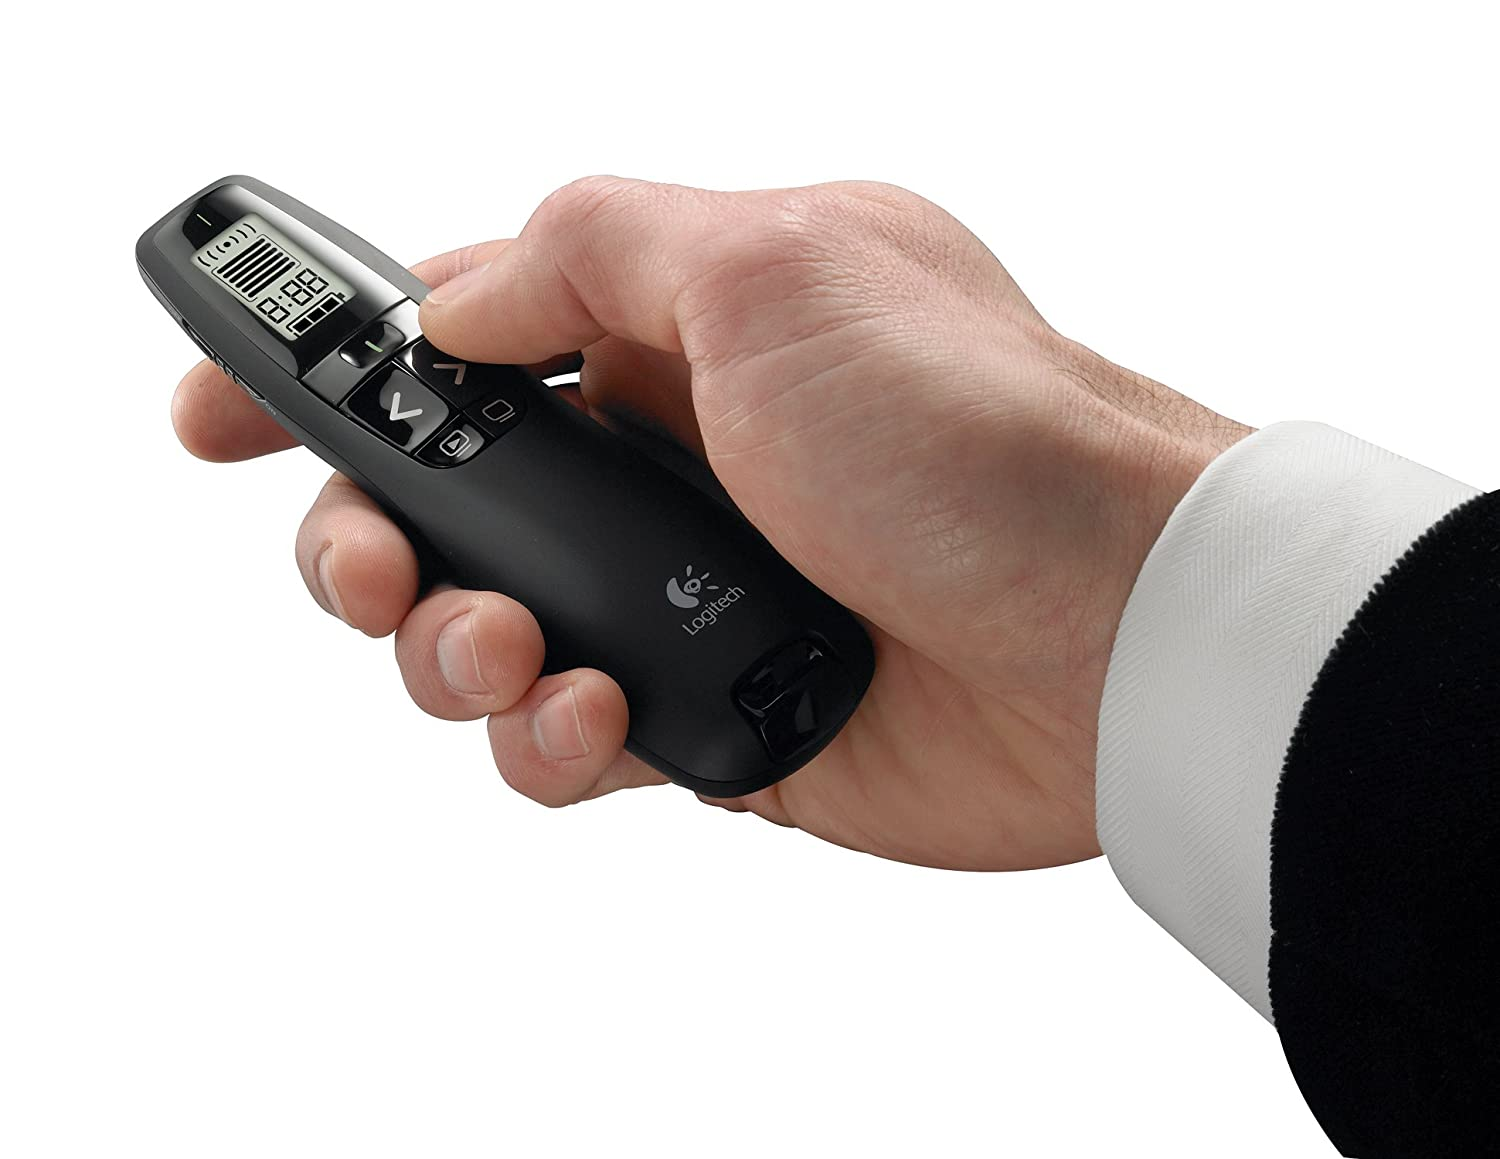 Logitech professional presenter r700 helps you give exceptionally good - Logitech Professional Presenter R800 With Green Laser Pointer Amazon Ca Electronics